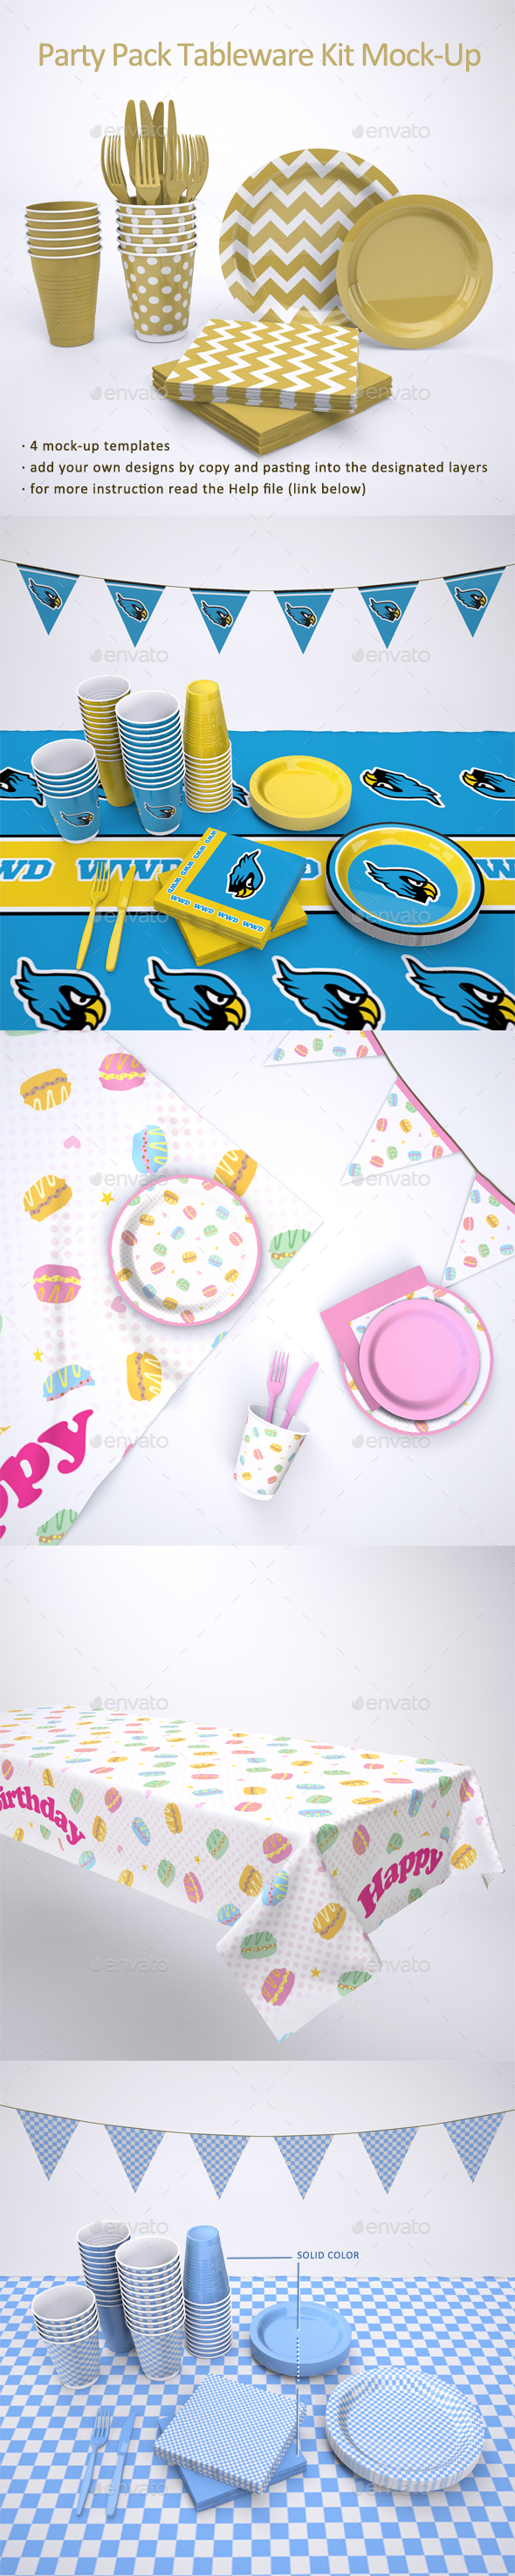 Party Supplies Pack Tableware Kit Mock-Up - Food and Drink Packaging